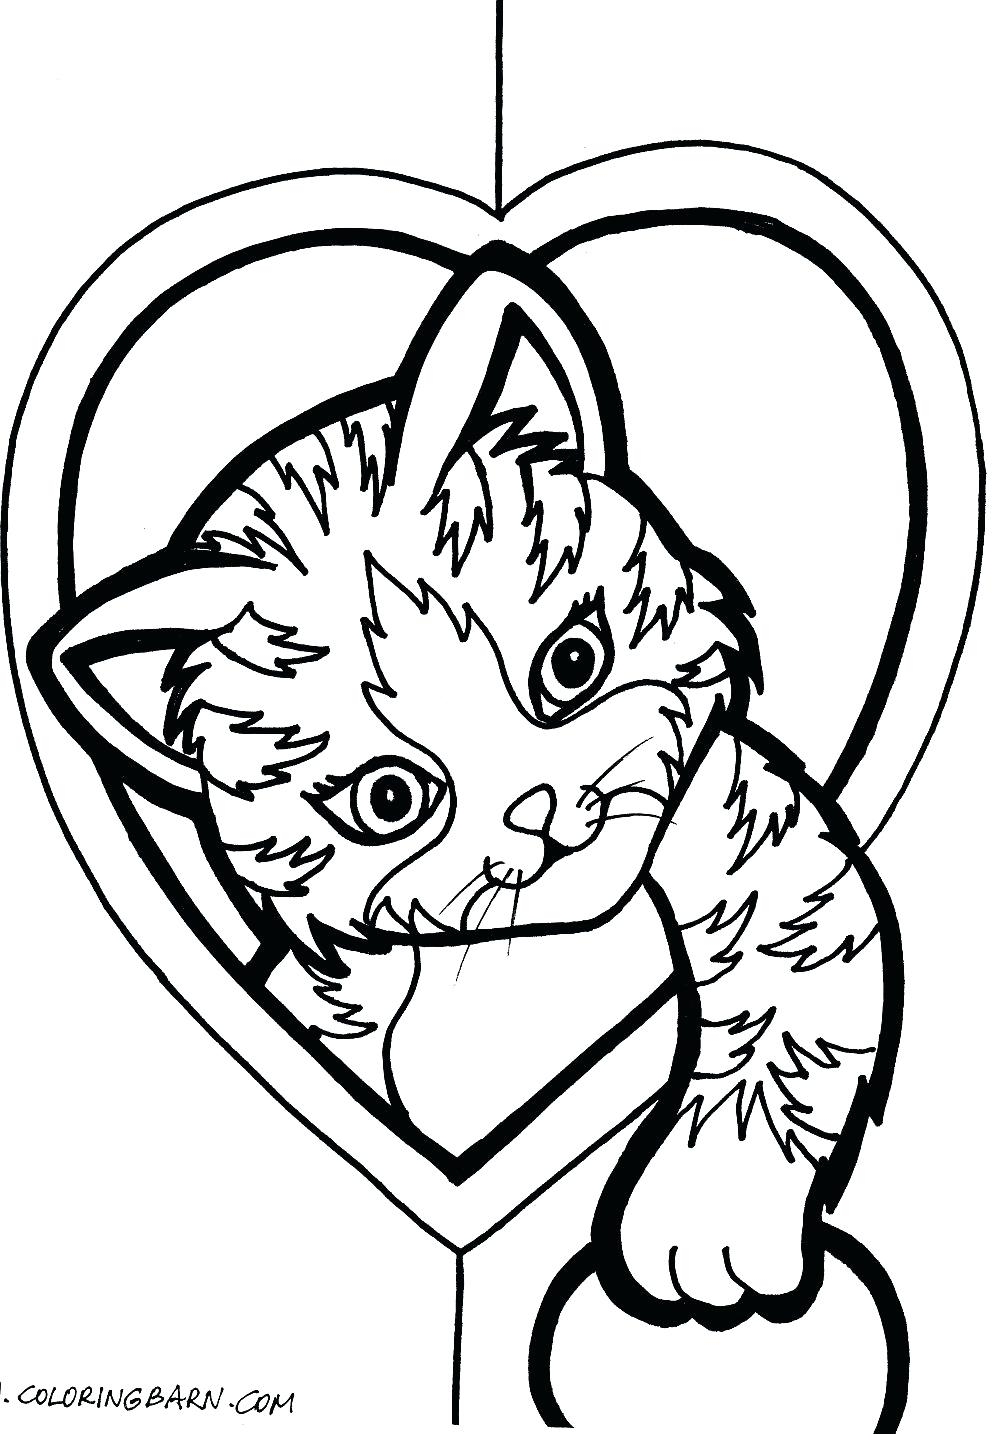 1000x1434 Heart And Snowman Coloring Pages To Print Anatomy Hearts Roses